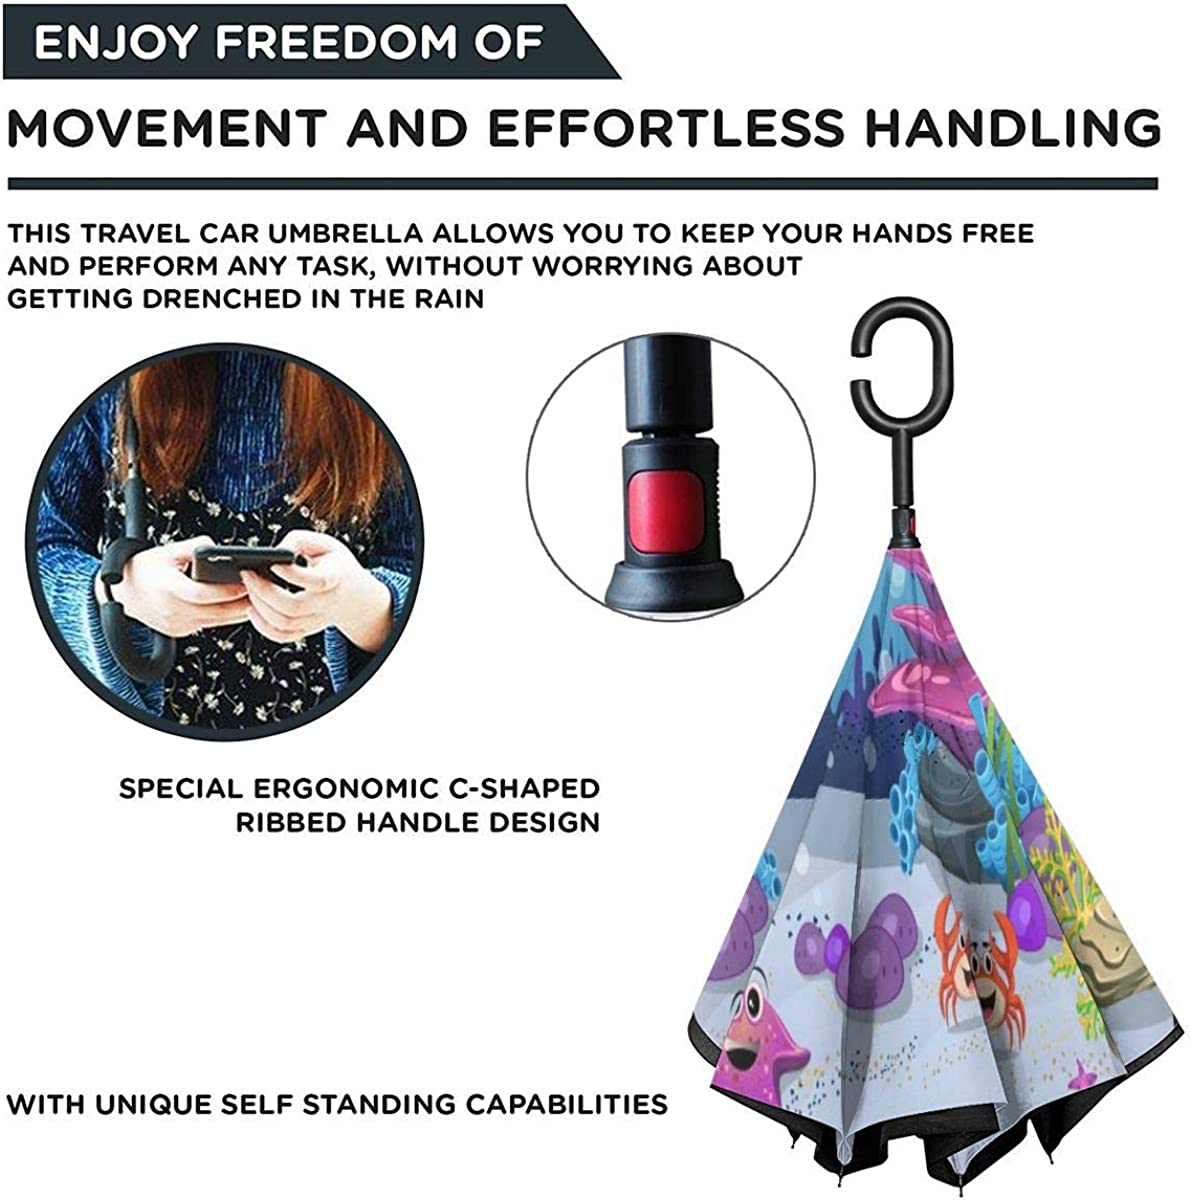 Reverse Umbrella Double Layer Inverted Umbrellas For Car Rain Outdoor With C-Shaped Handle Marine Habitats Coral Reefs Anemones Fish And Marlin Fish Customized